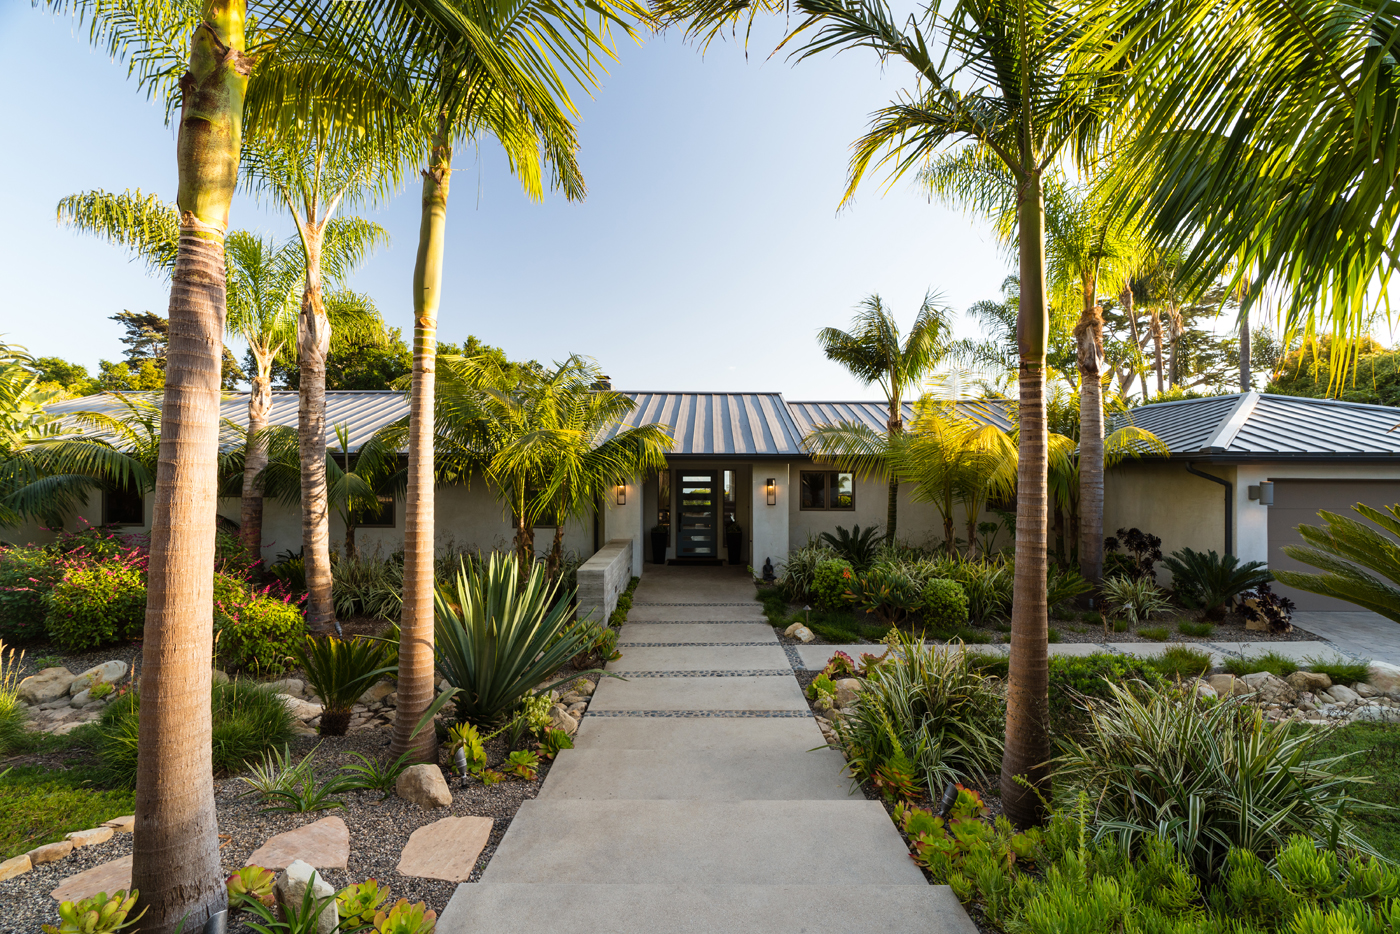 4163 Marina Drive, Hope Ranch - OFFERED AT $7,100,000 - LEARN MORE